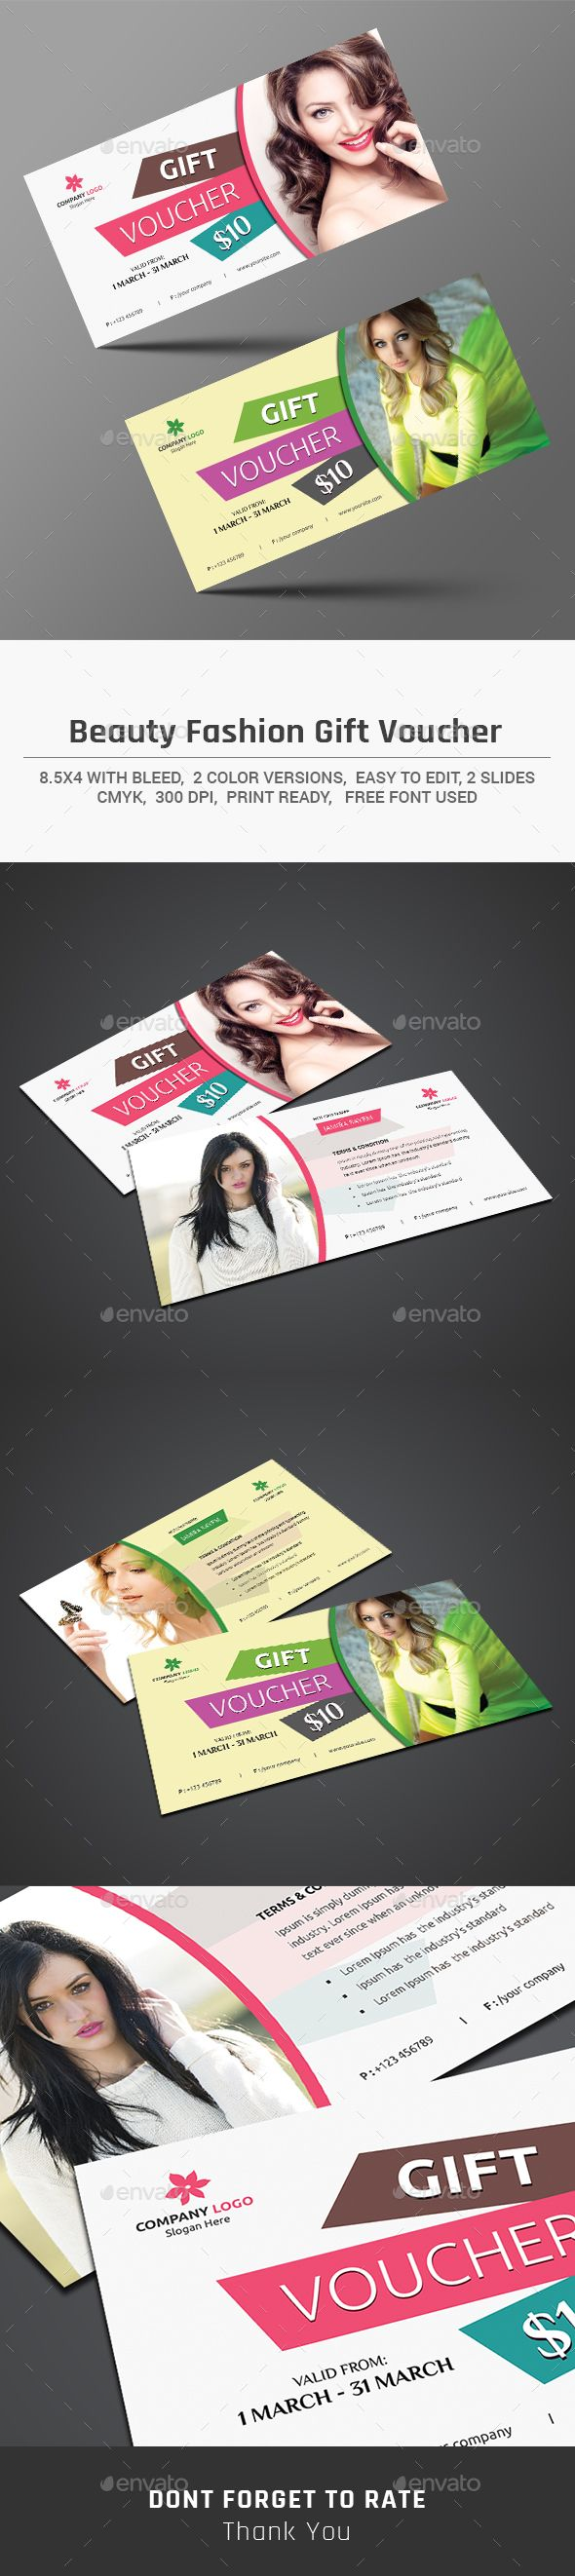 Beauty Fashion Gift Voucher Template PSD #design Download…